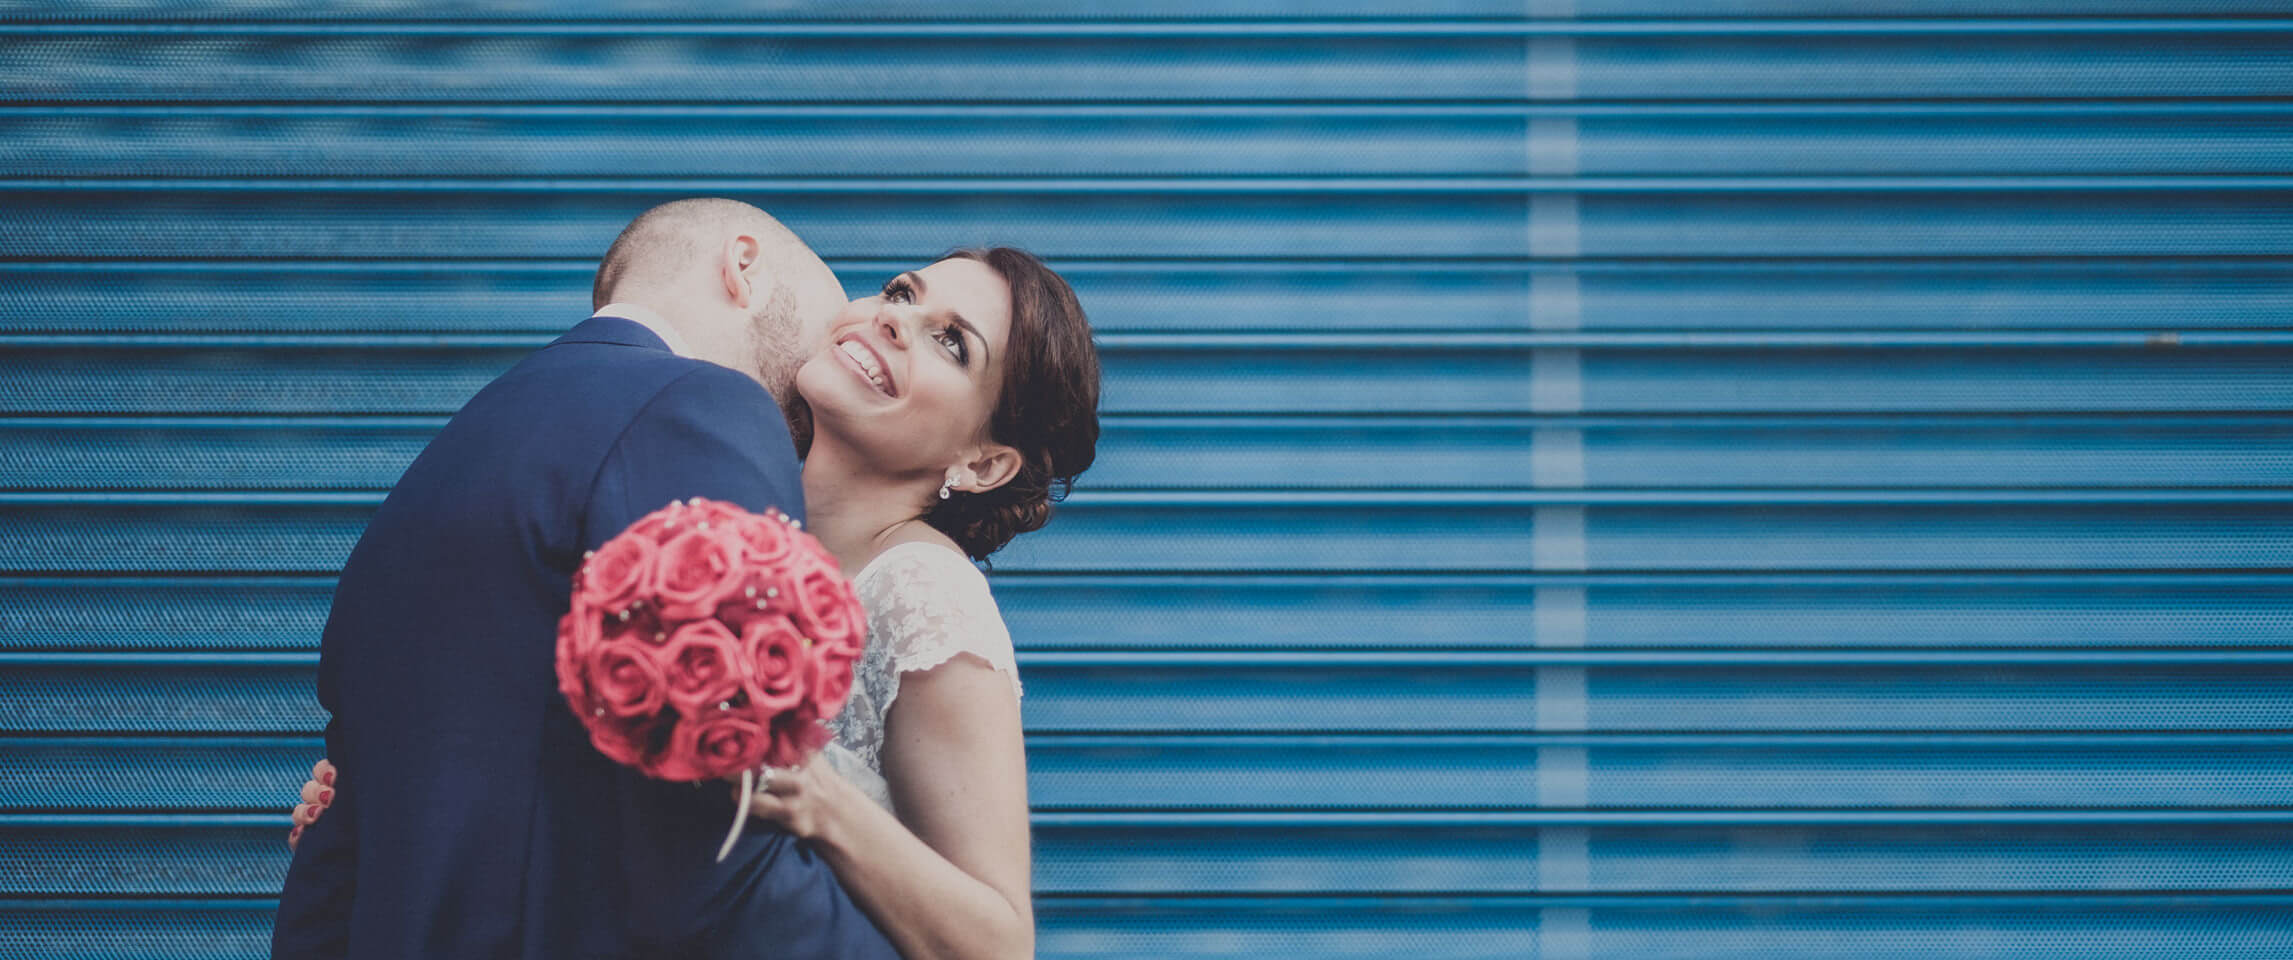 Urban Wedding Photography at the Drop Forge in Birmingham